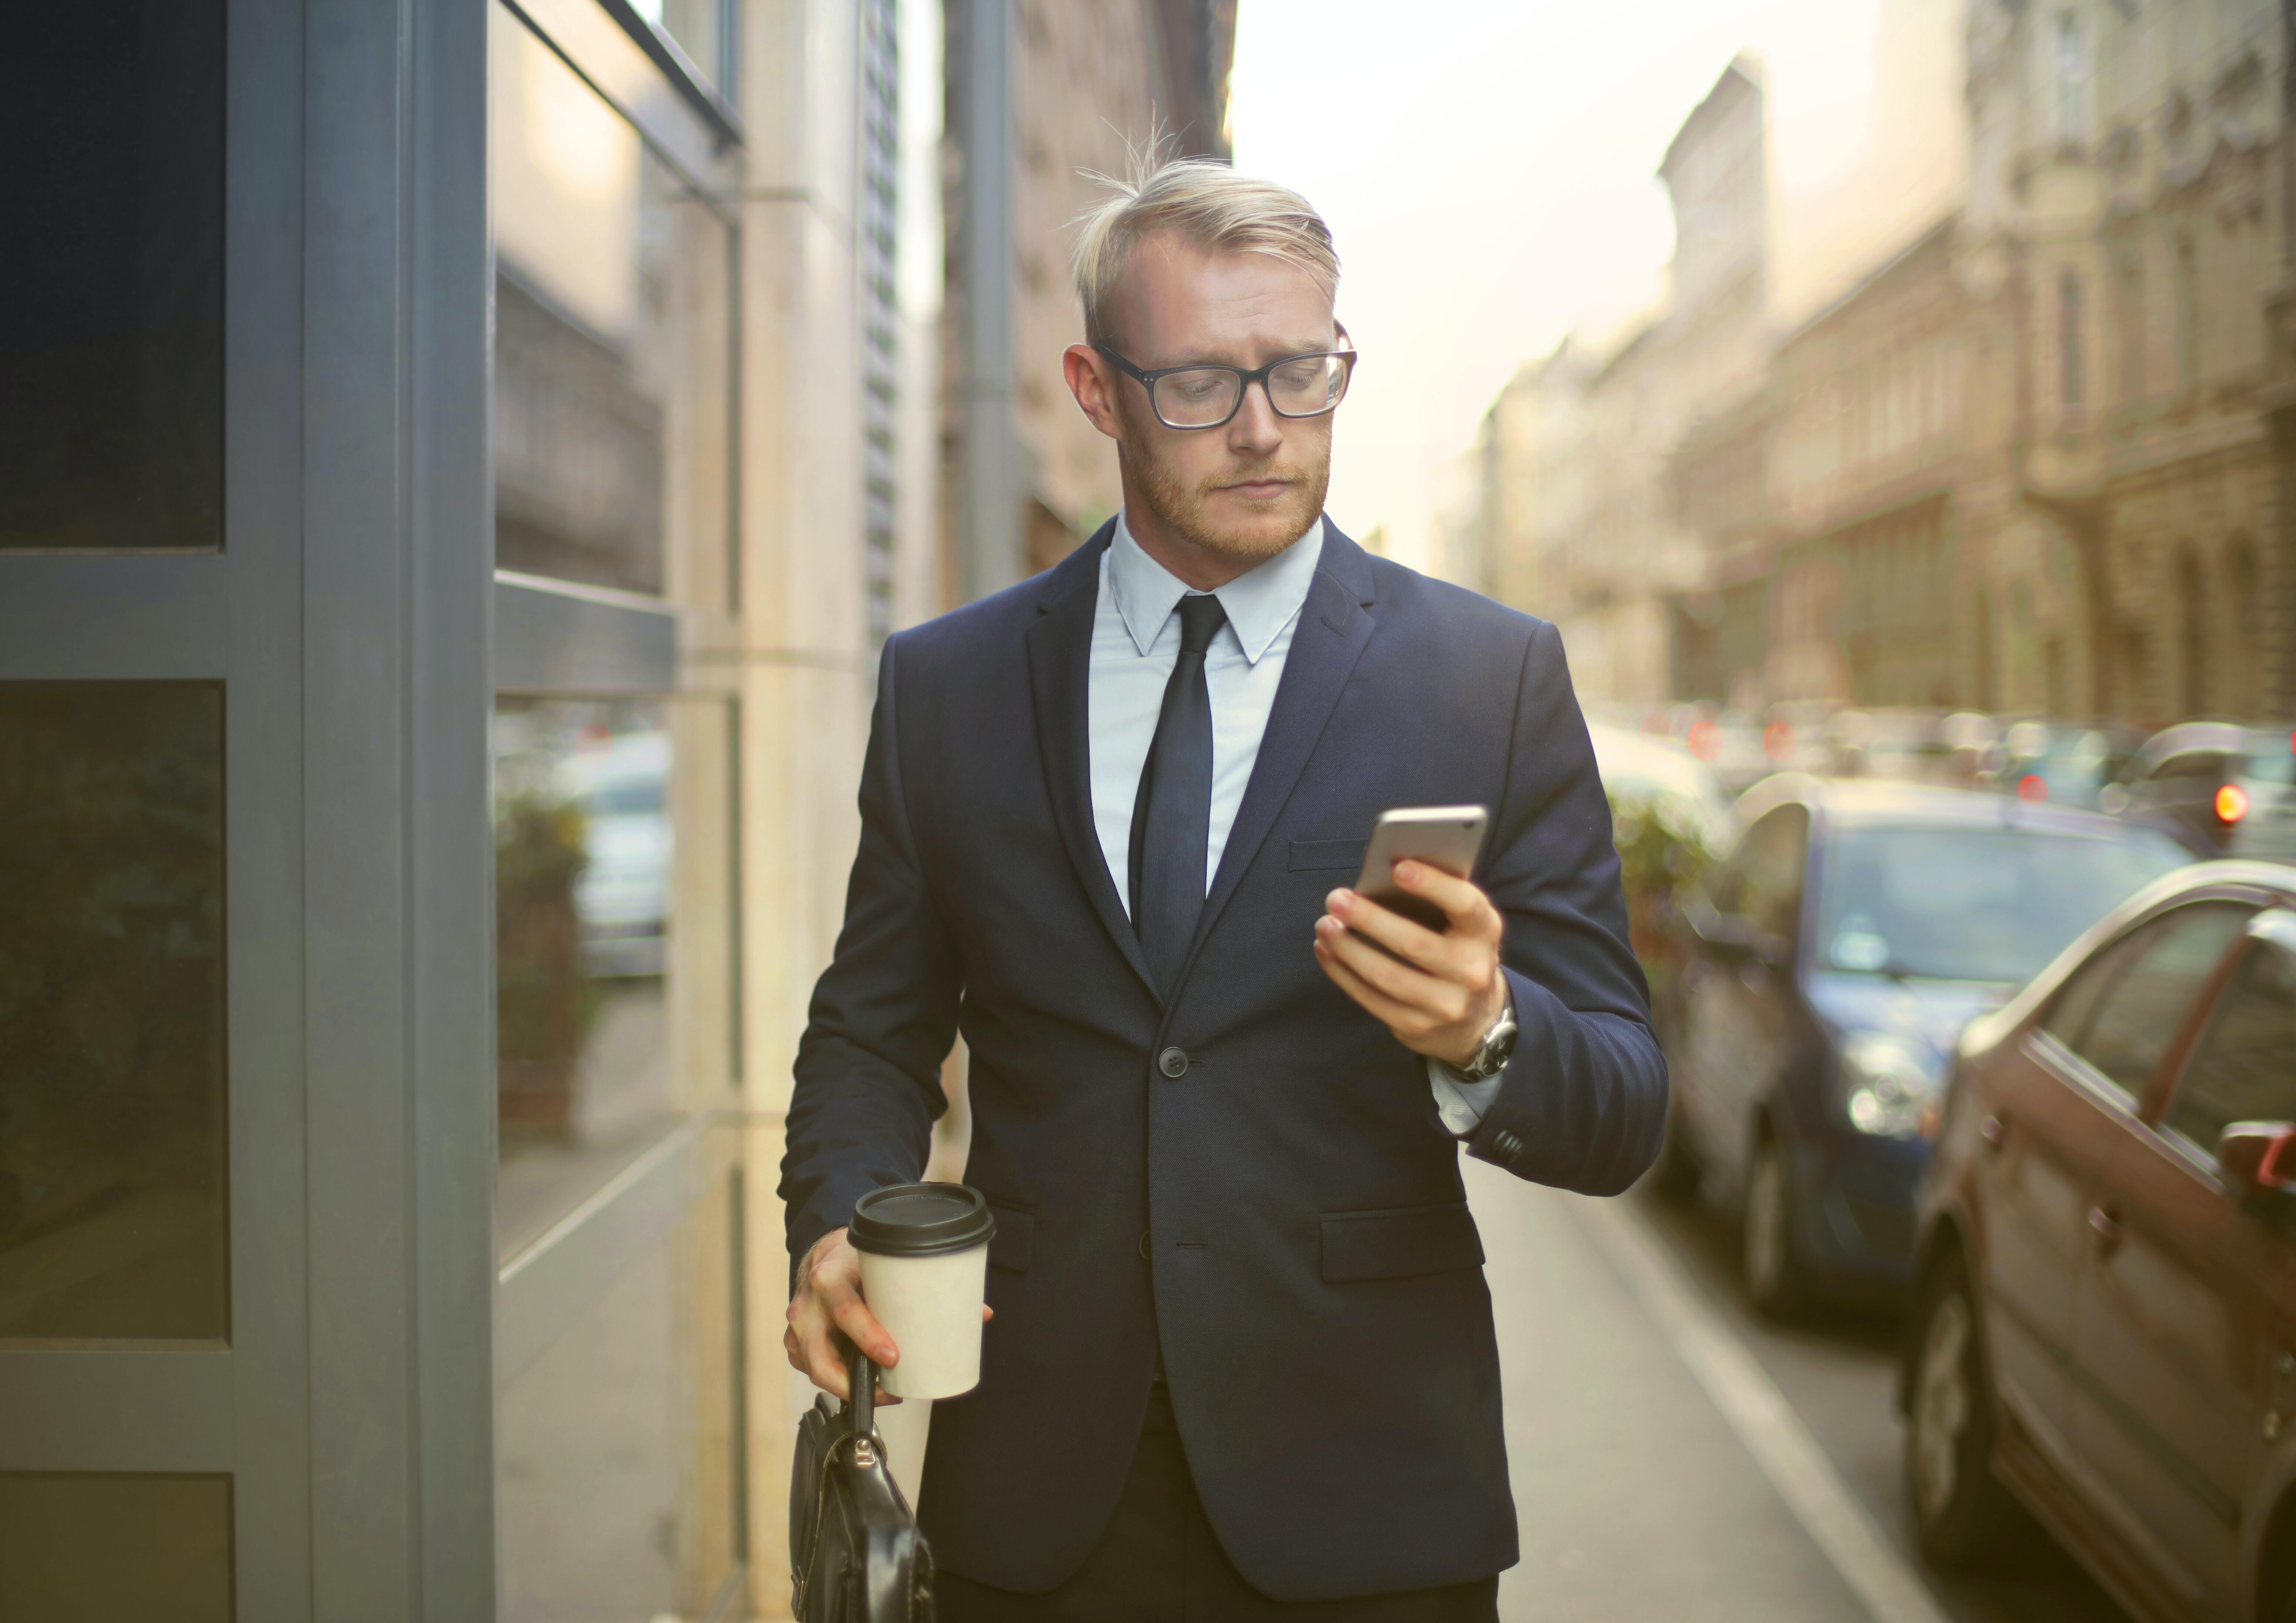 Man on busy street with mobile phone